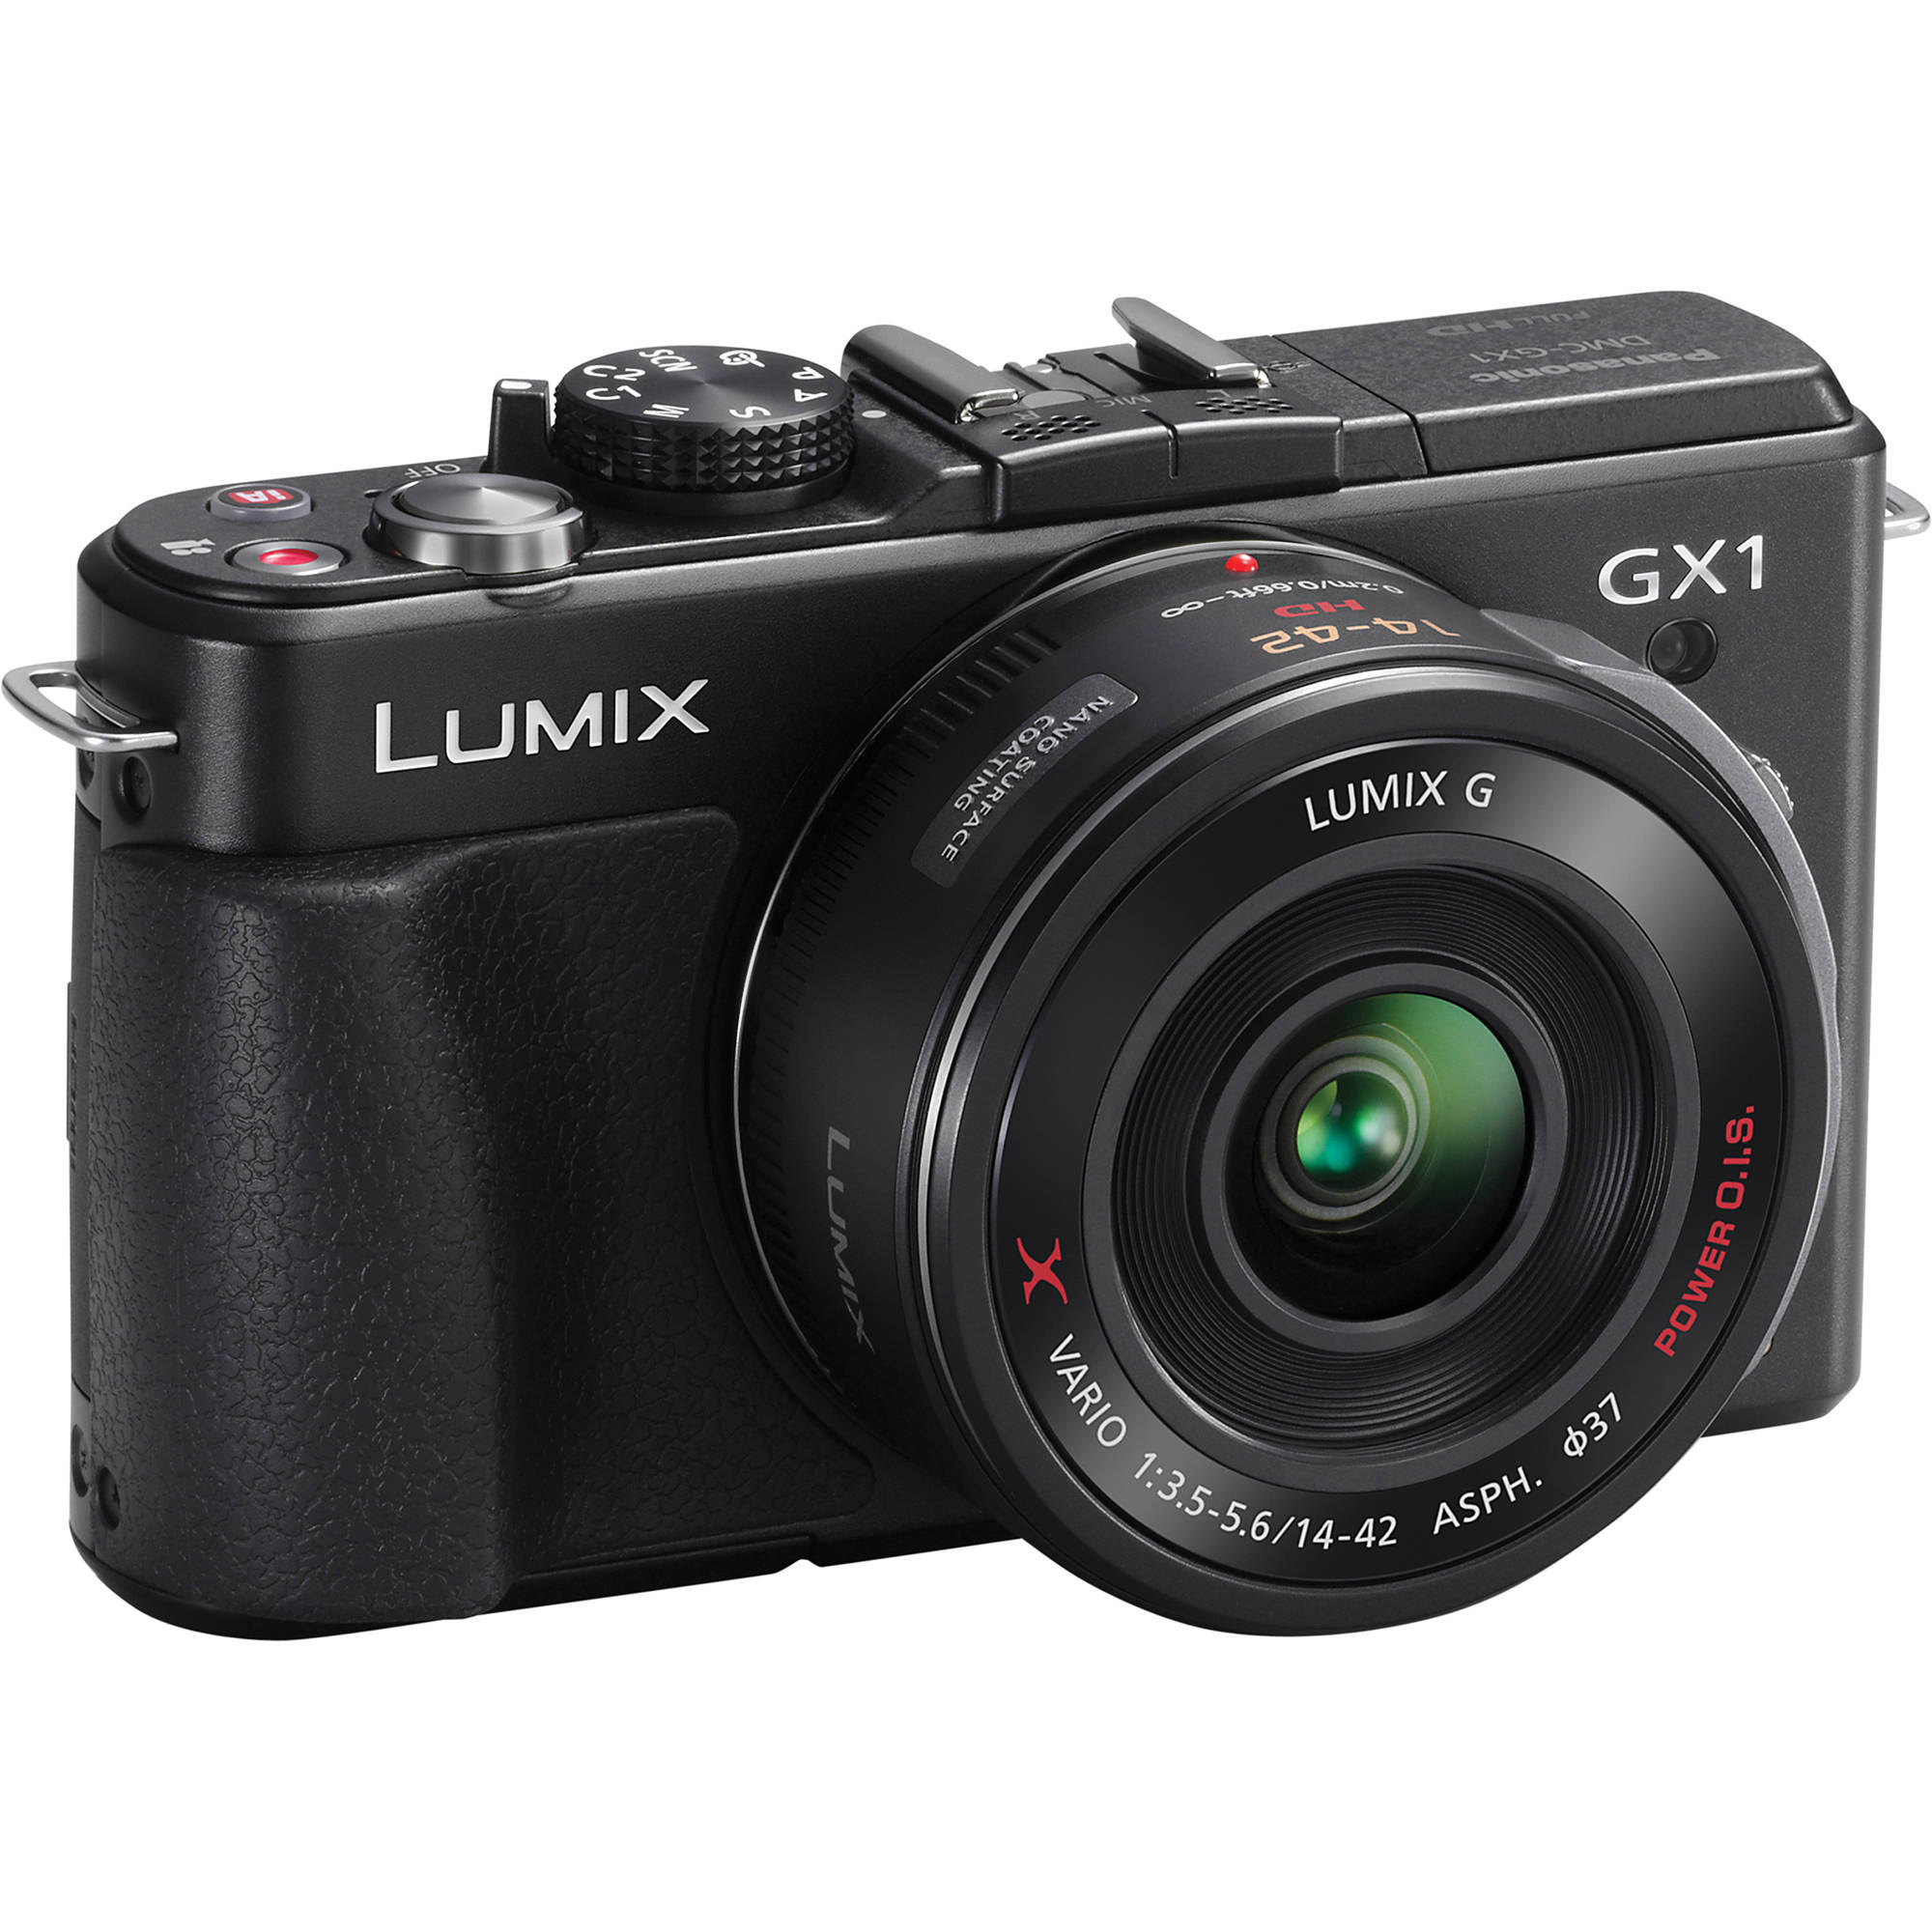 panasonic lumix dmc gx1 mirrorless micro four thirds dmc gx1xk rh bhphotovideo com Panasonic Lumix G1 Panasonic GX7